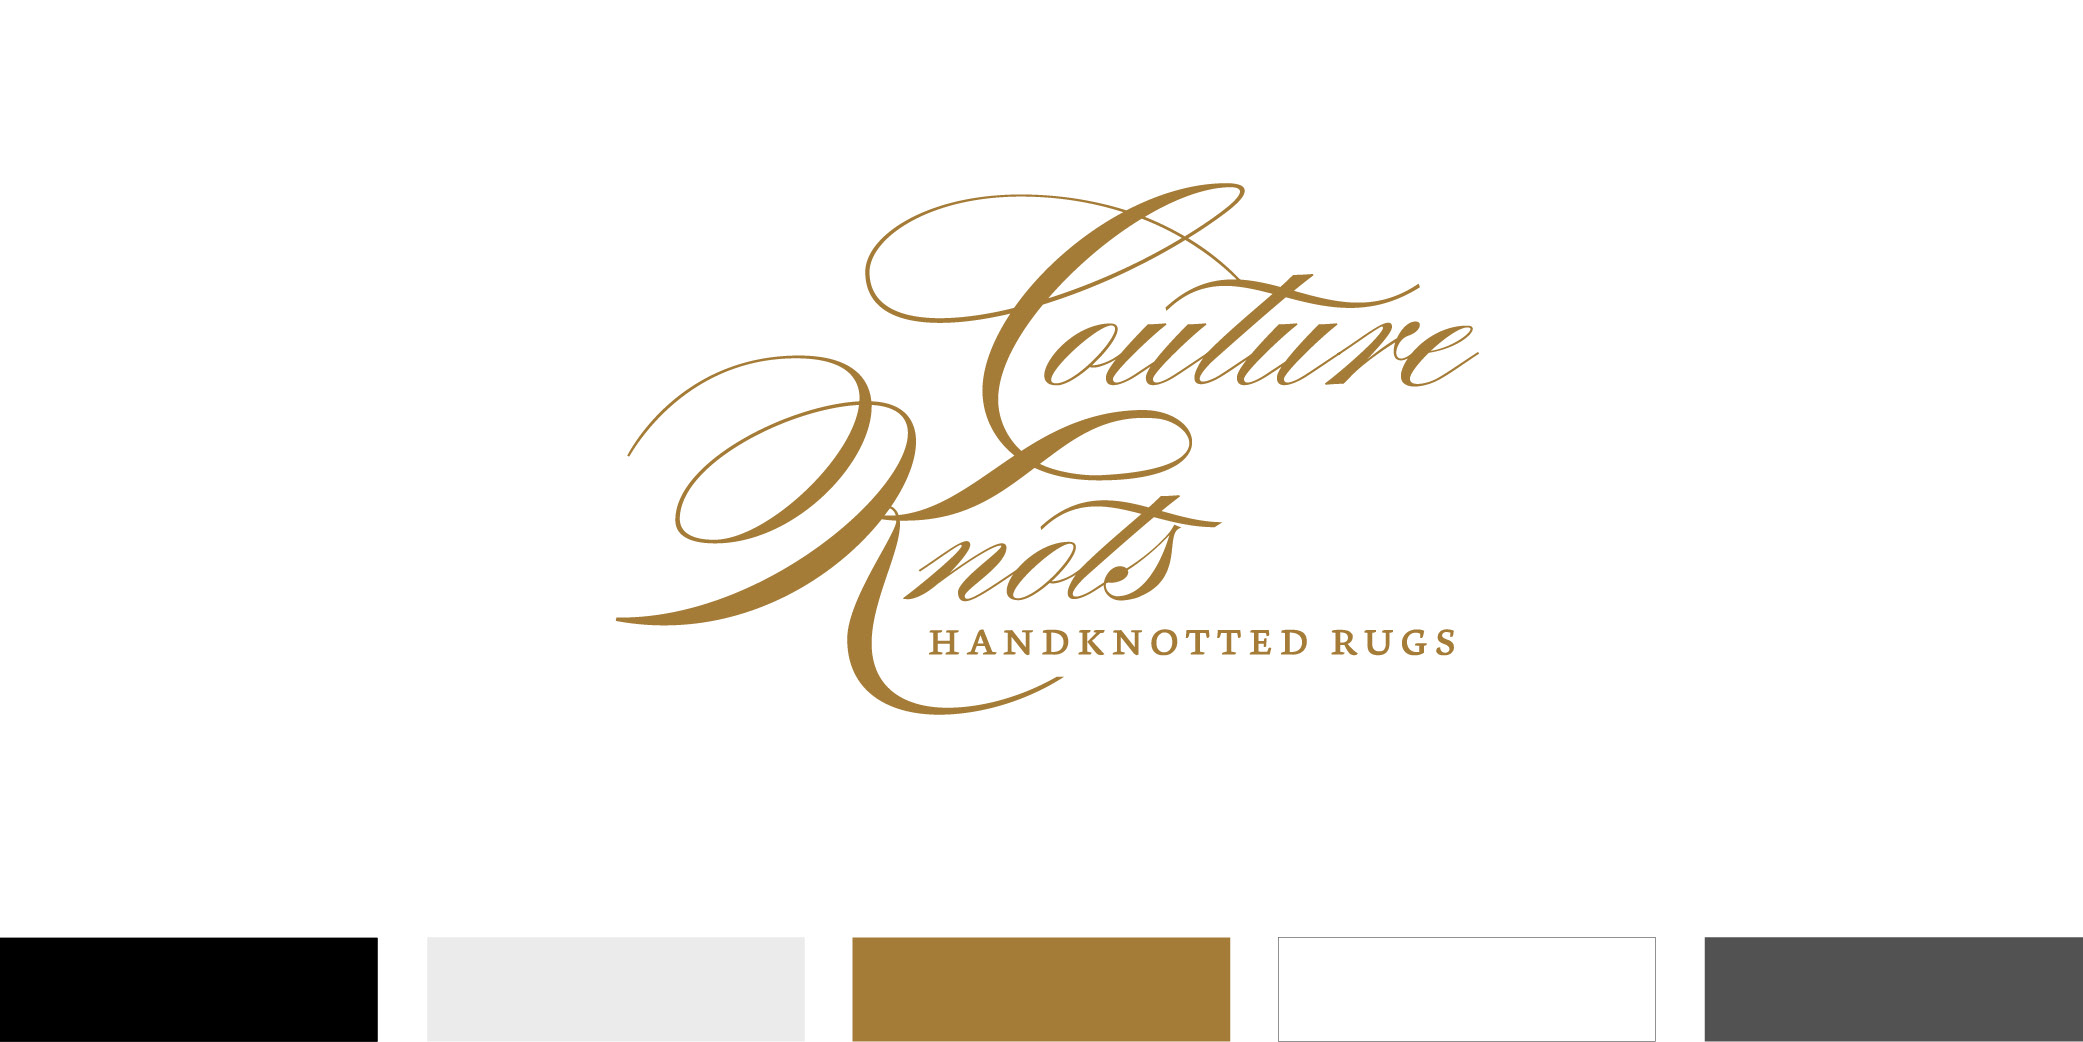 The Couture Knots logo uses a sophisticated and elegant typeface the represents the brand experience.